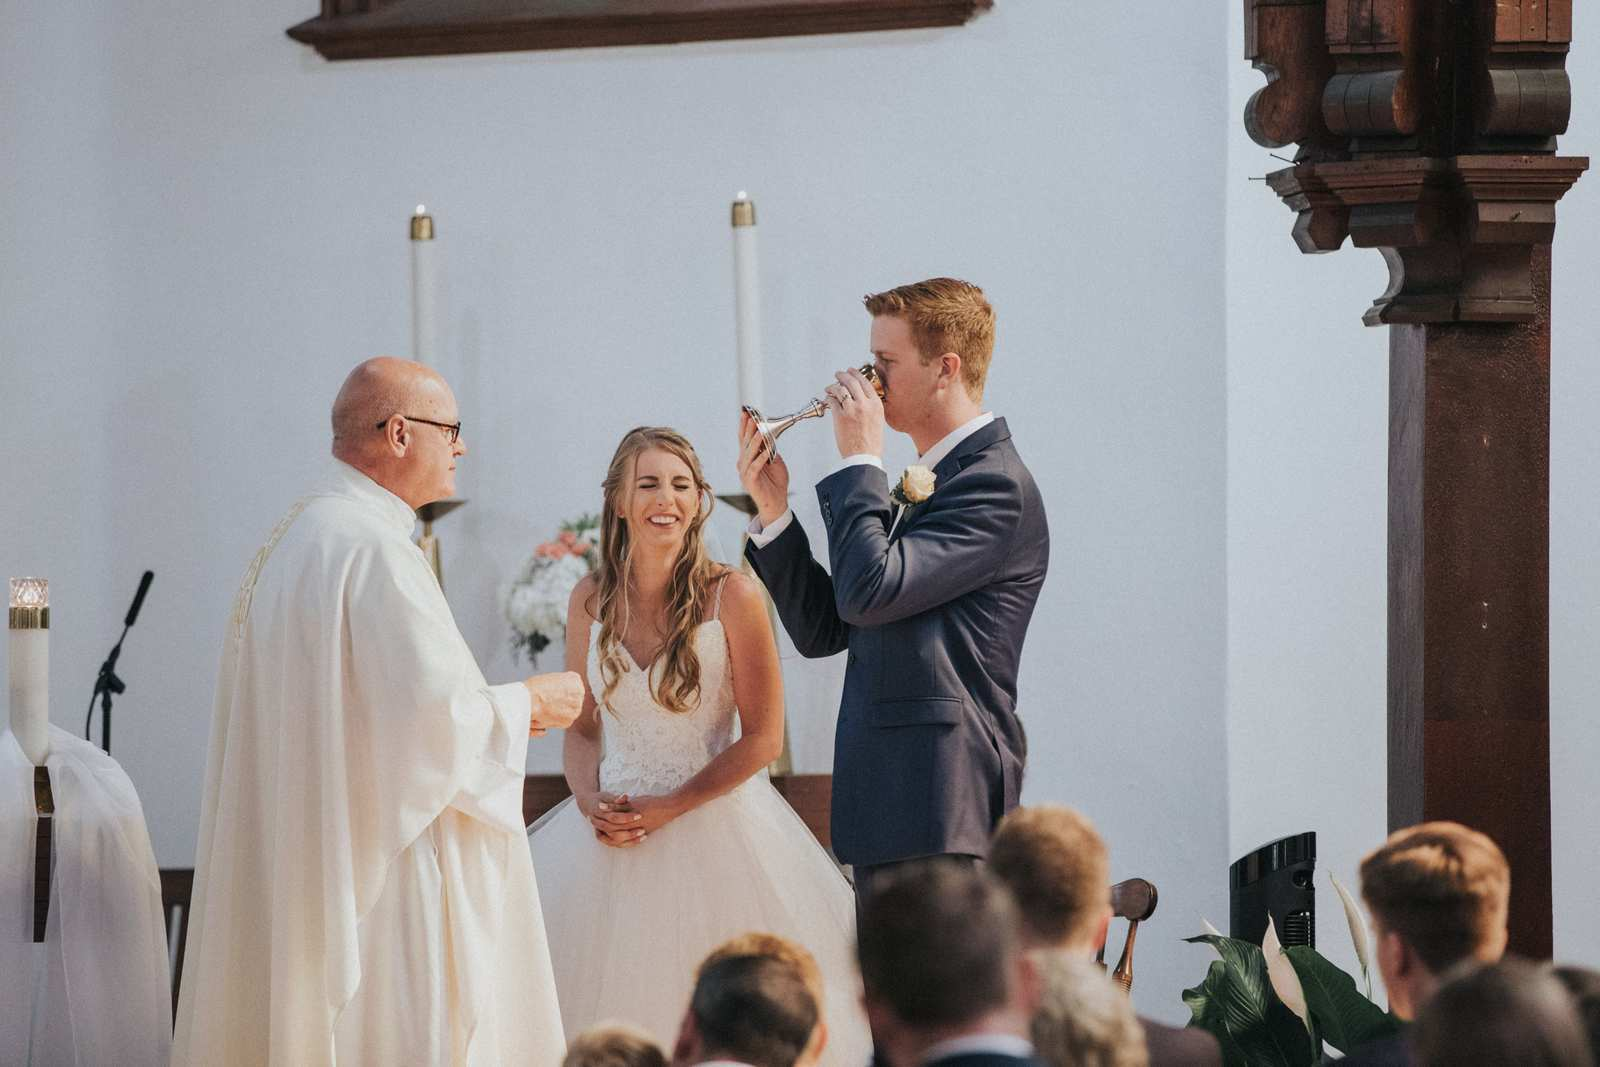 A rather humorous moment during a wedding ceremony as the groom drank the communion wine at a church in Middletown NJ. On this same wedding day we traveled to Deepcut Gardens and then the Oysterpoint hotel!